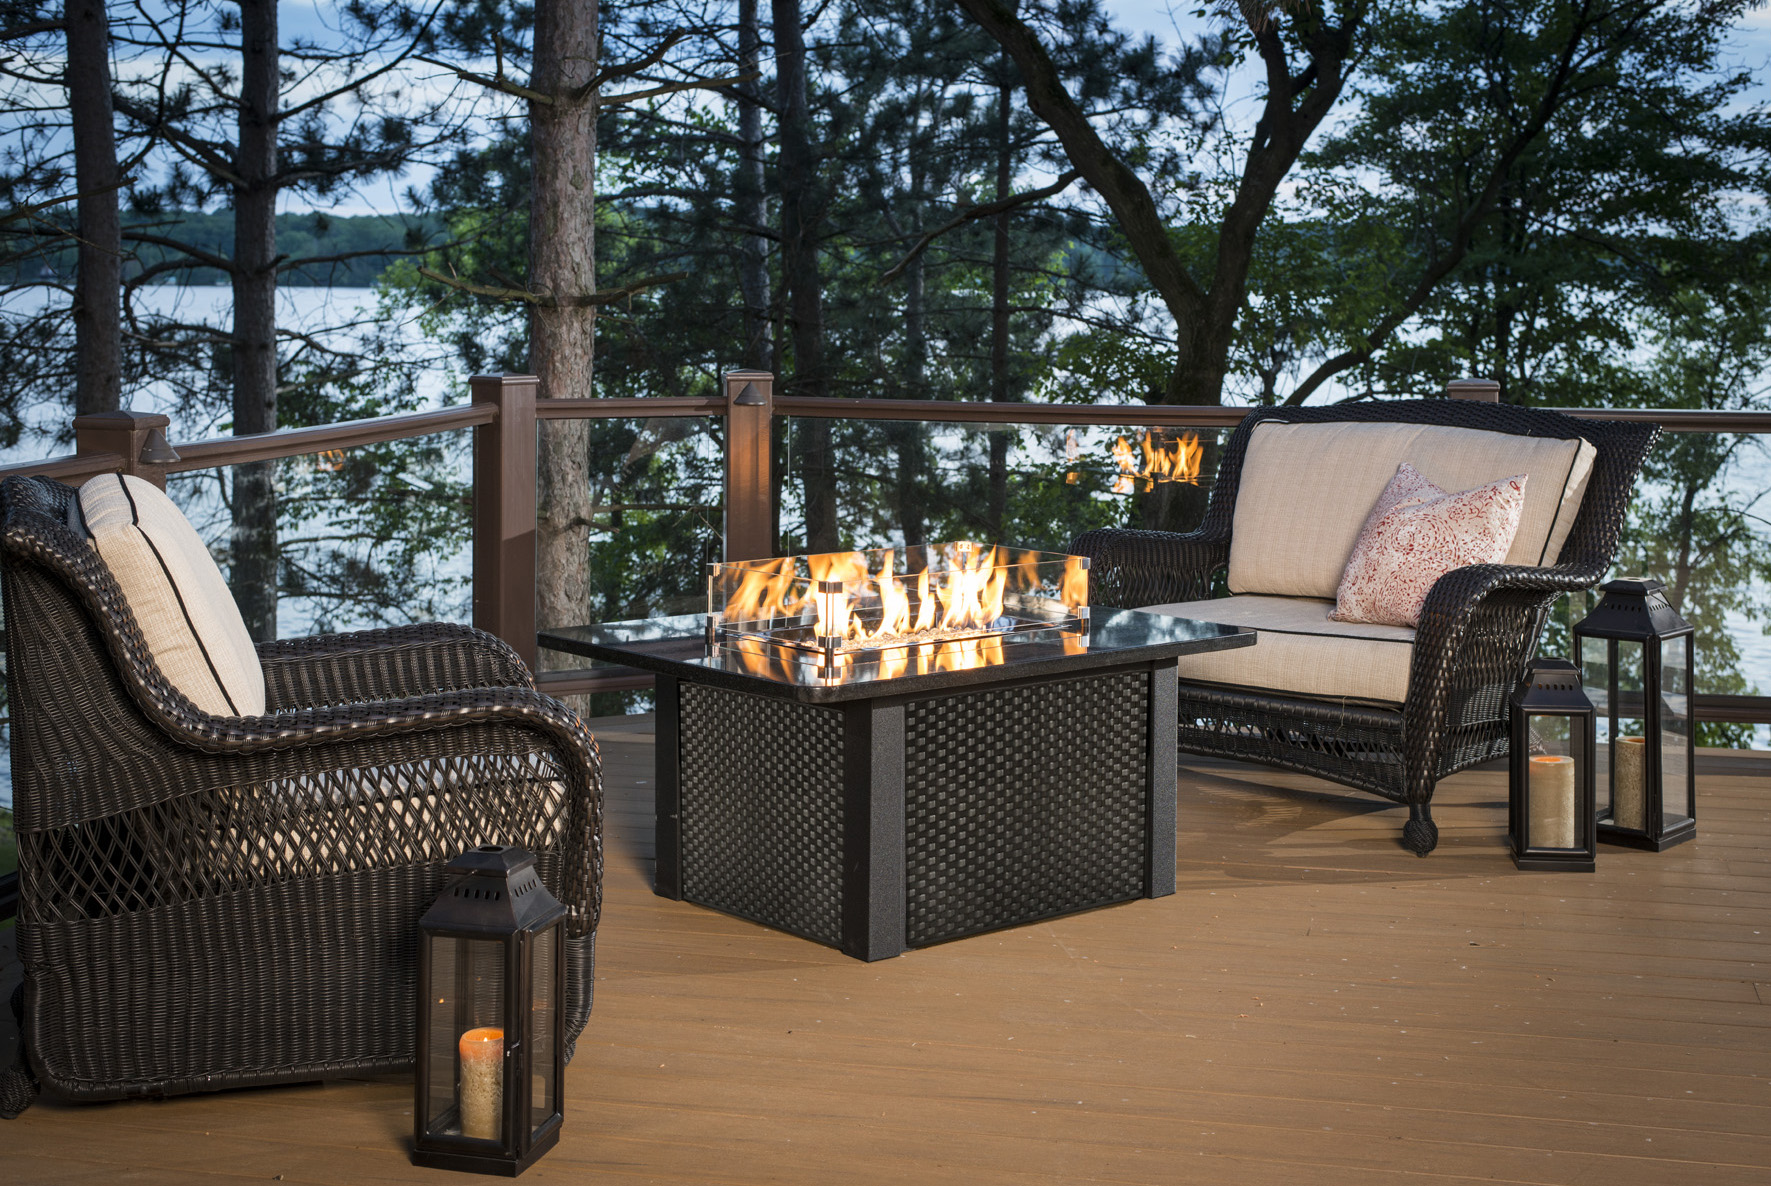 Outdoor Great Room Fire Pits - Resin wicker fire pit table